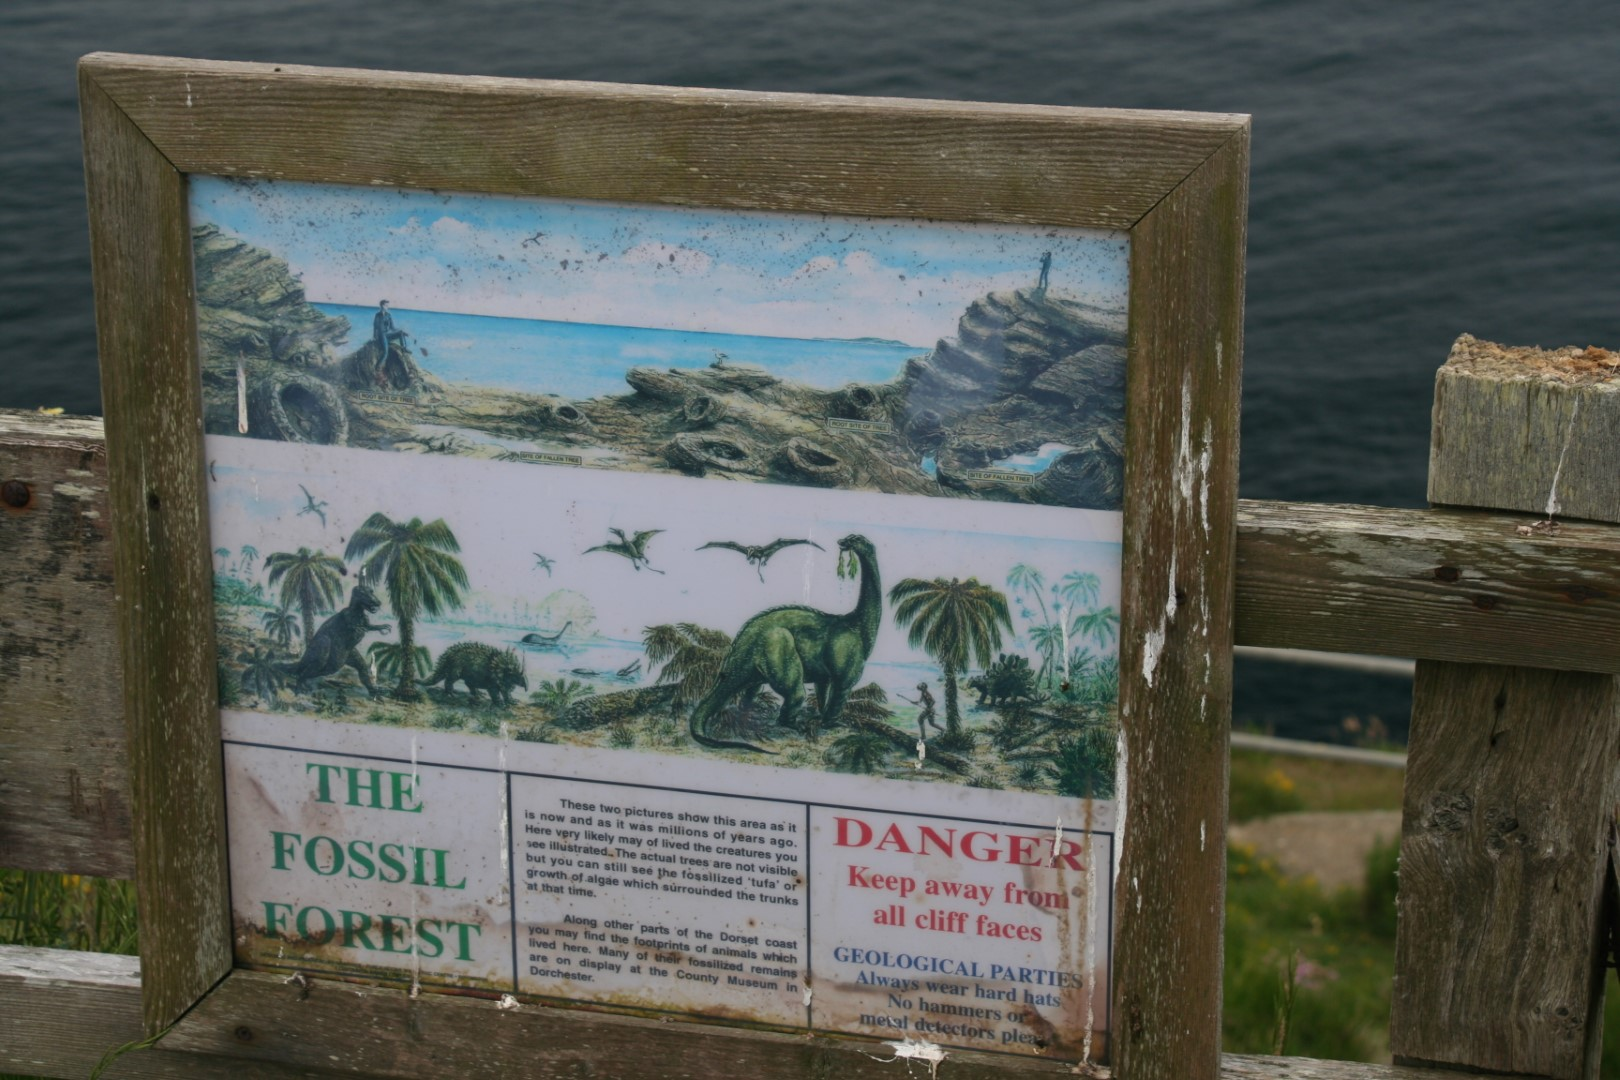 Information board on fossilised trees.